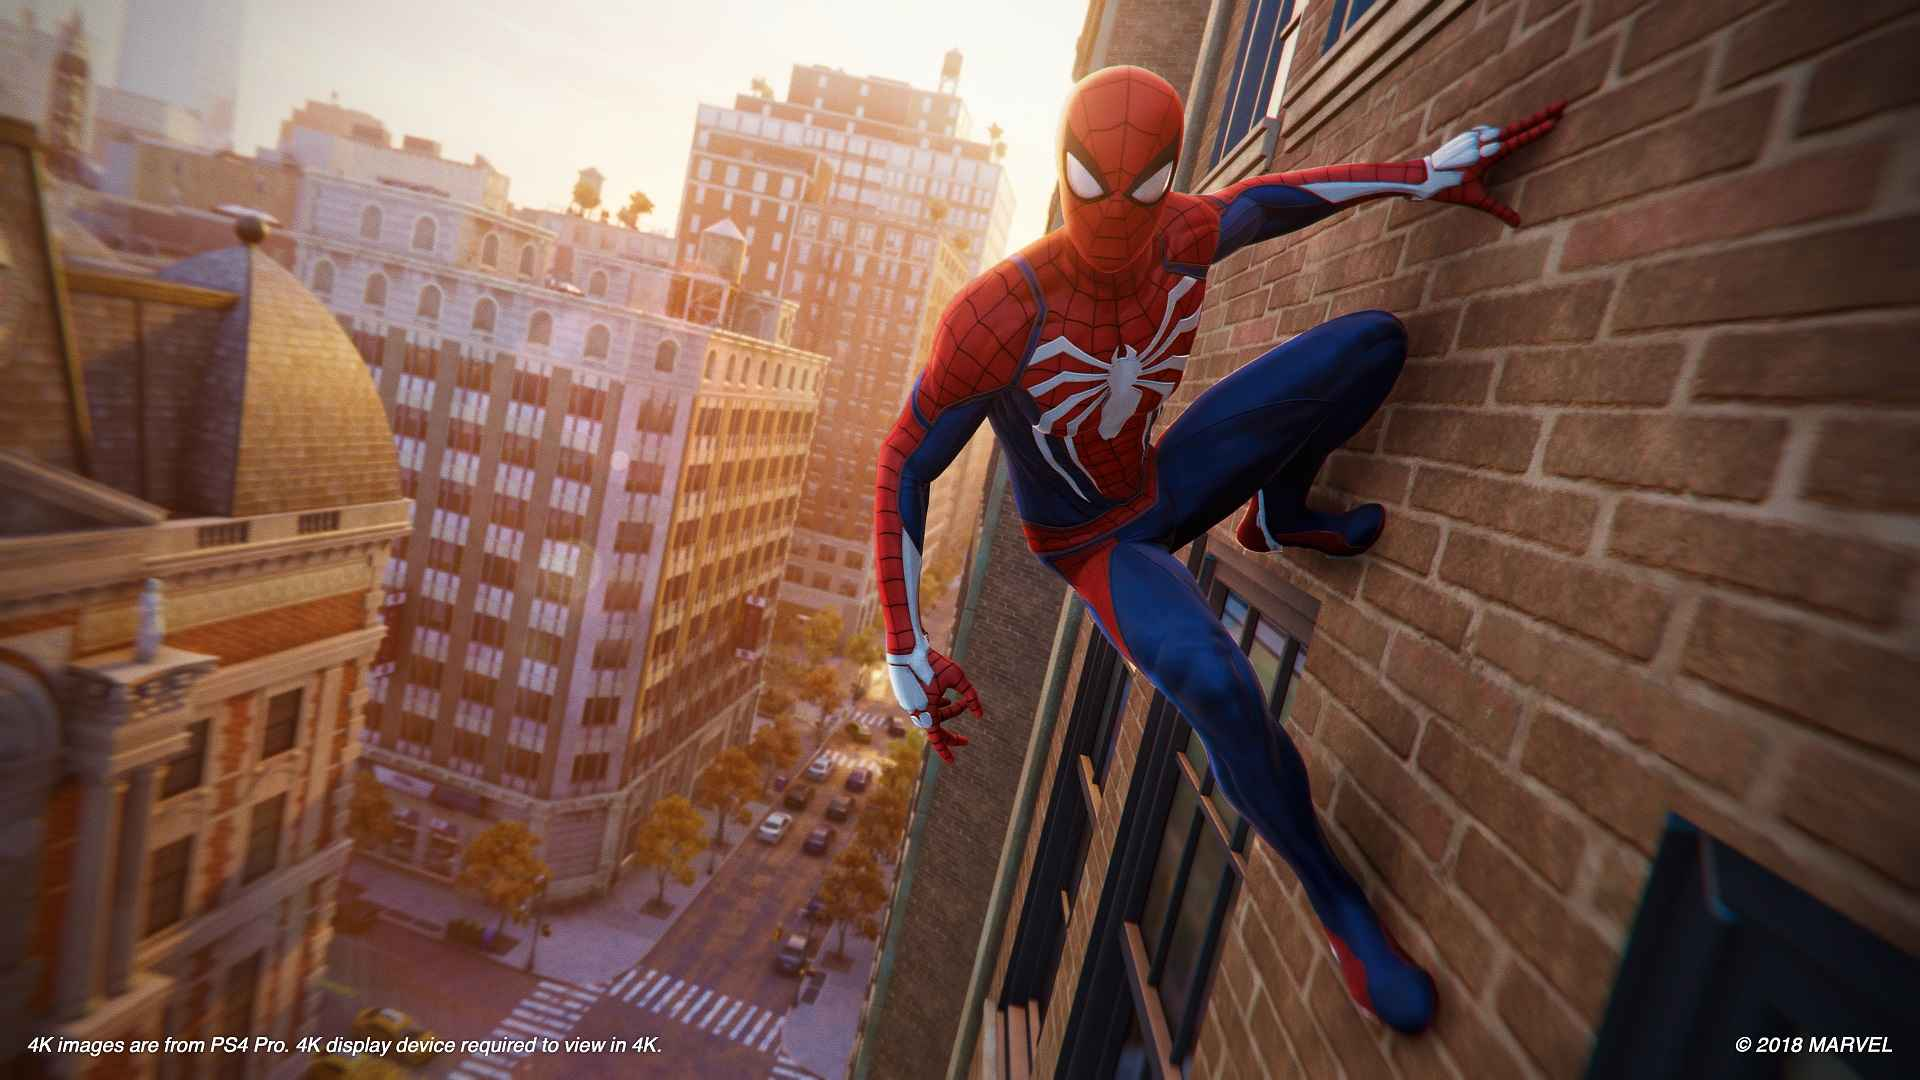 Spider Man Ps4 Statue Puzzle Solution At The Museum Playstation